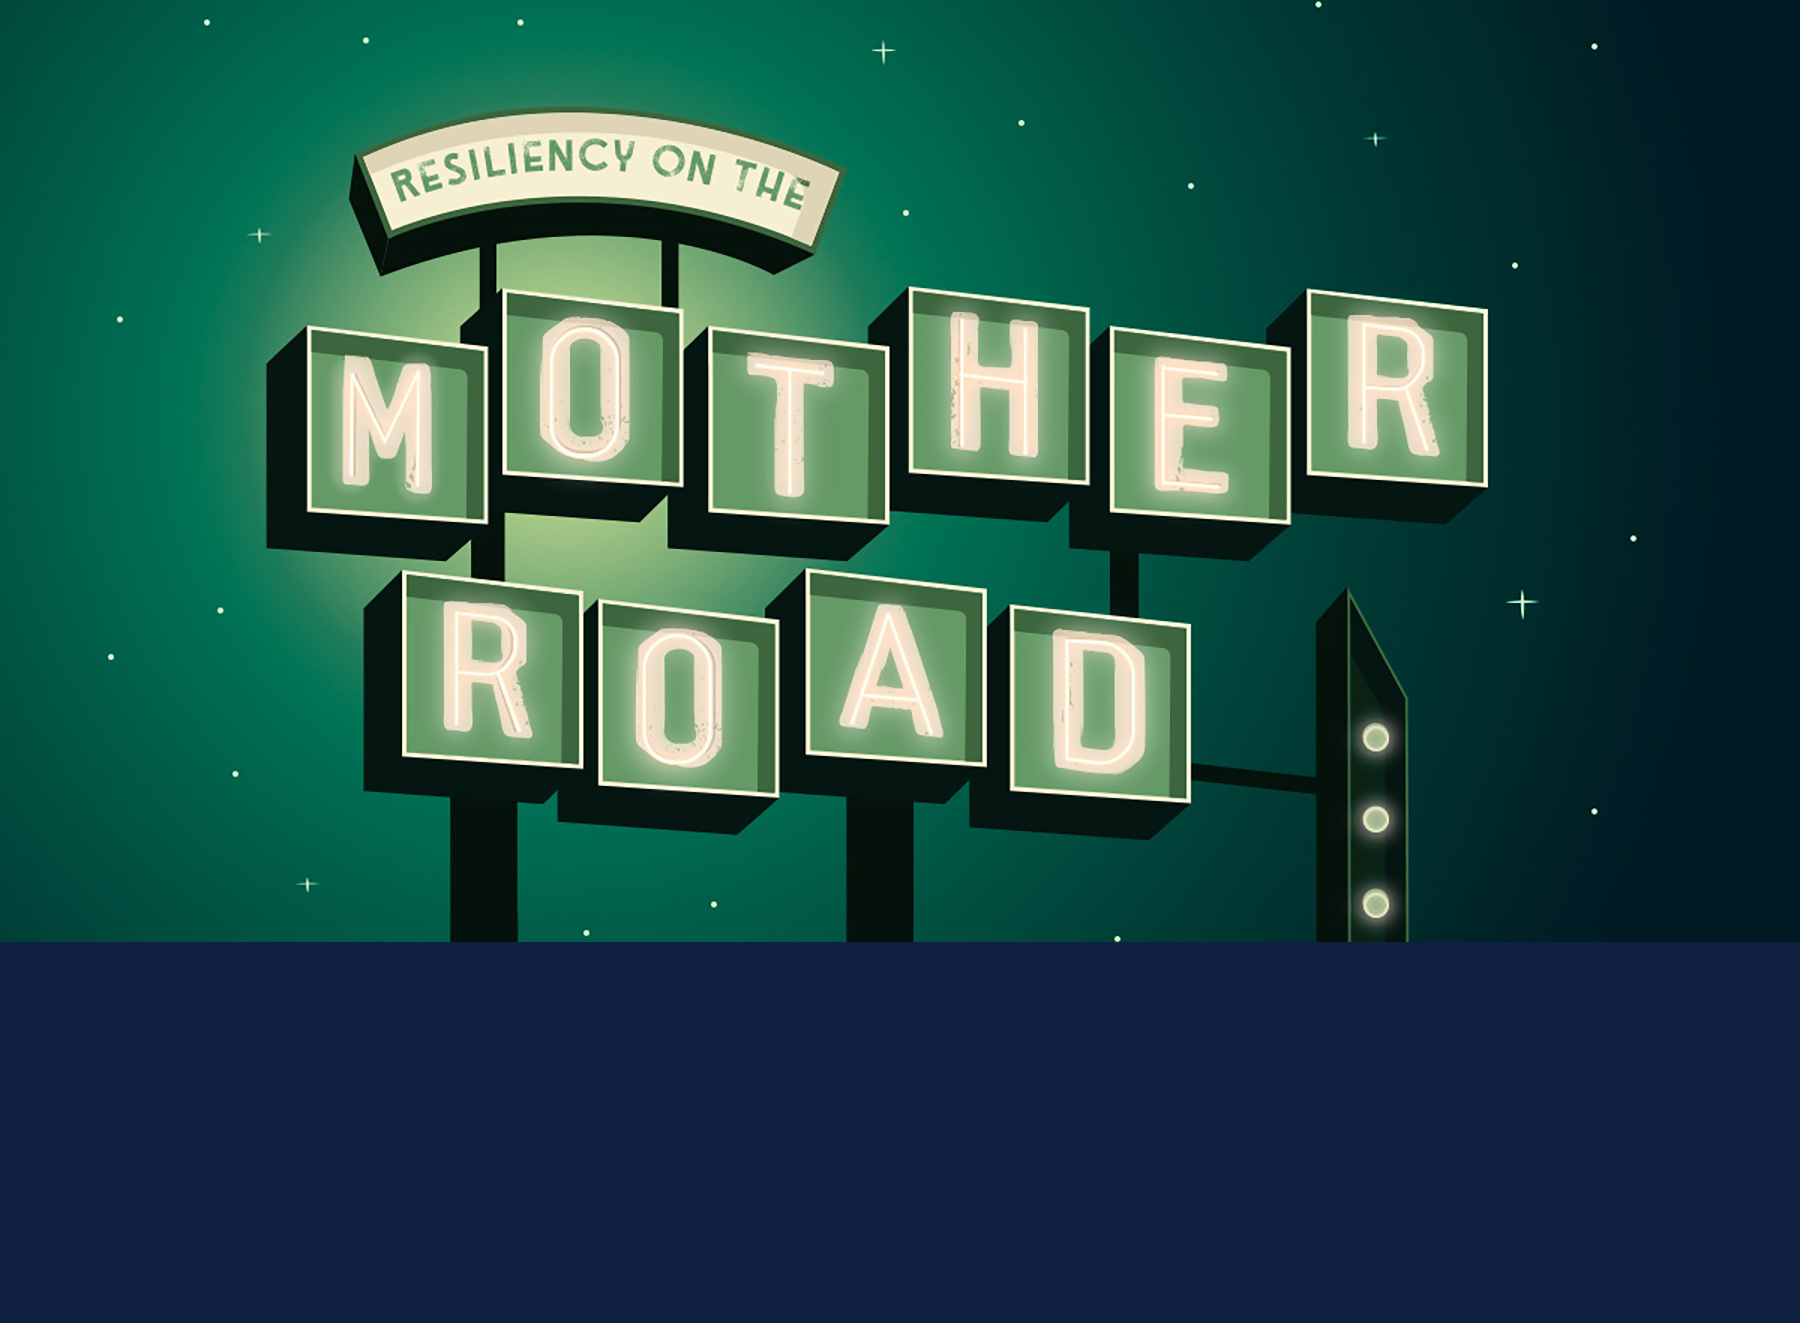 Graphic for story title, 'Resiliency on the MOther Road'